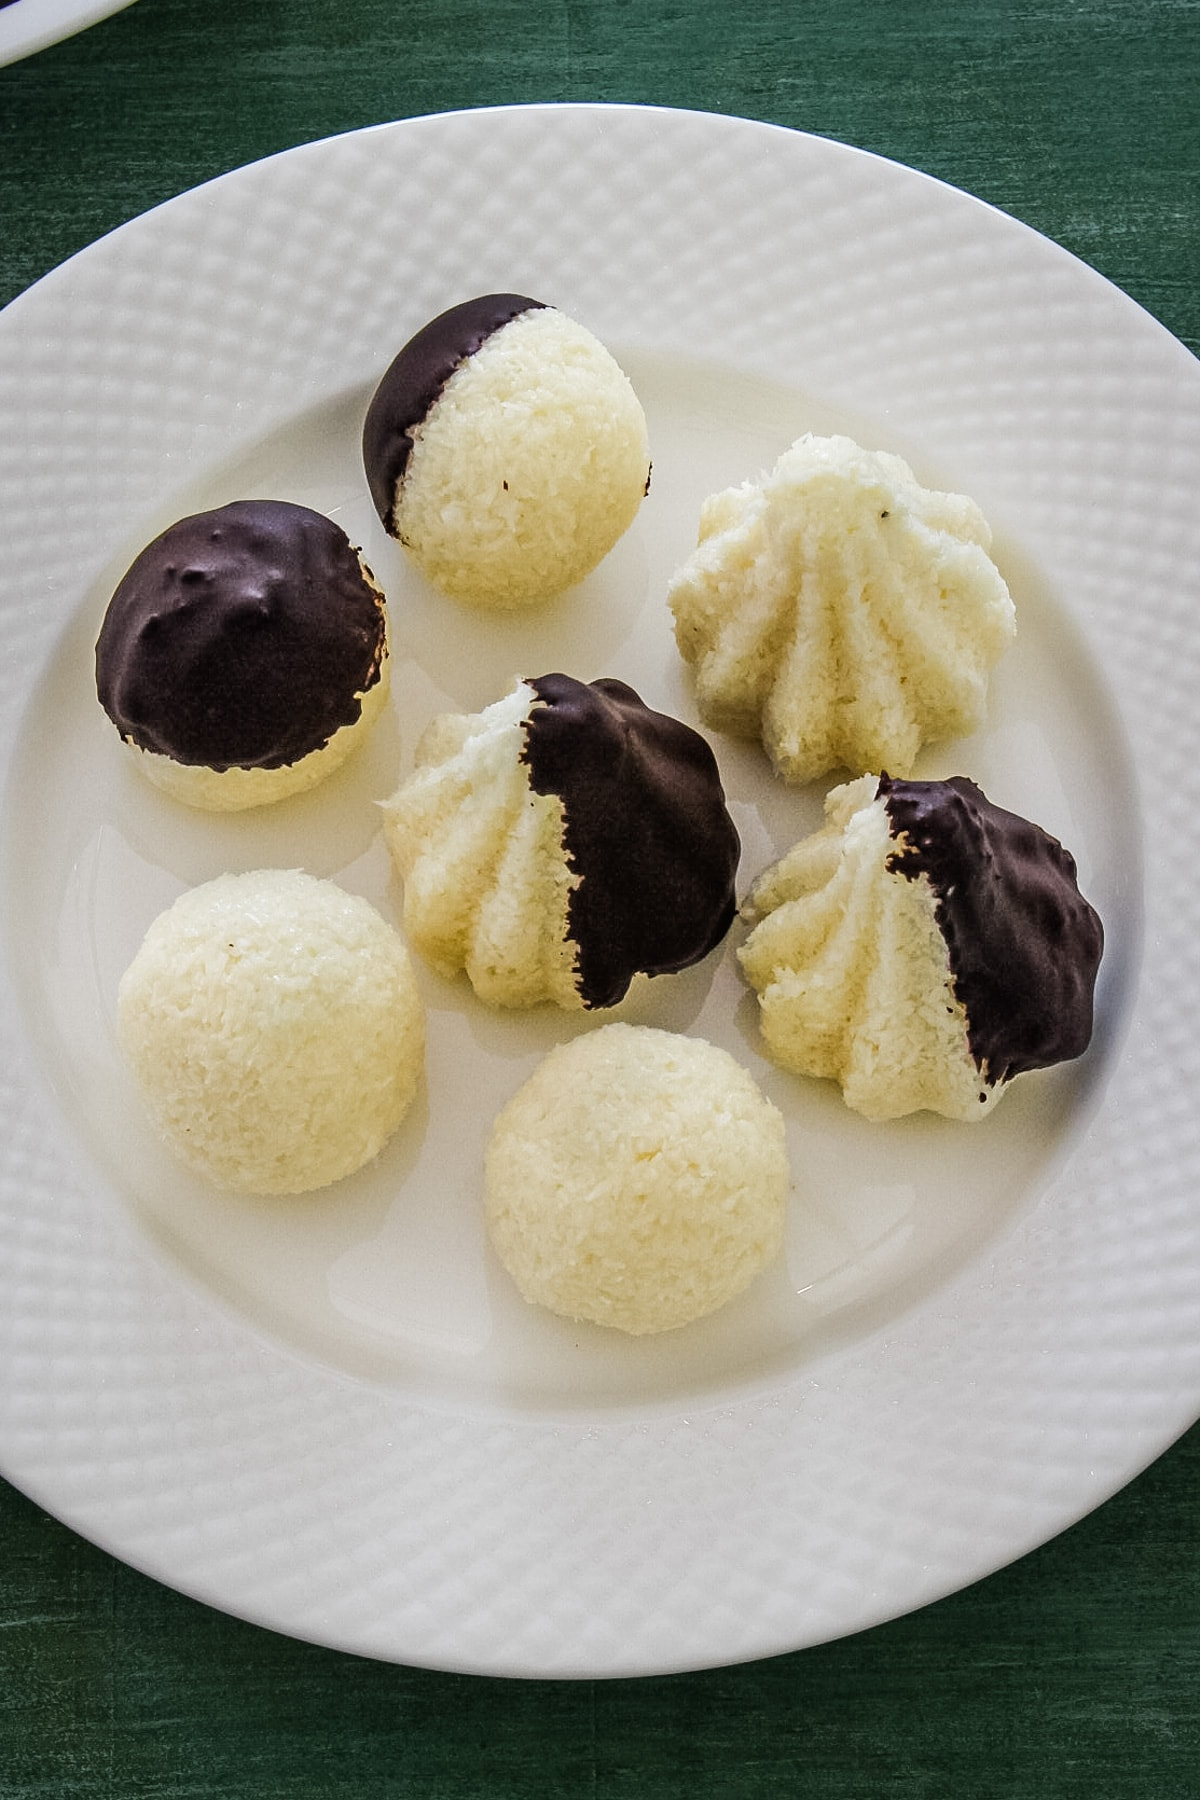 Top view of chocolate coated coconut modak on a white plate